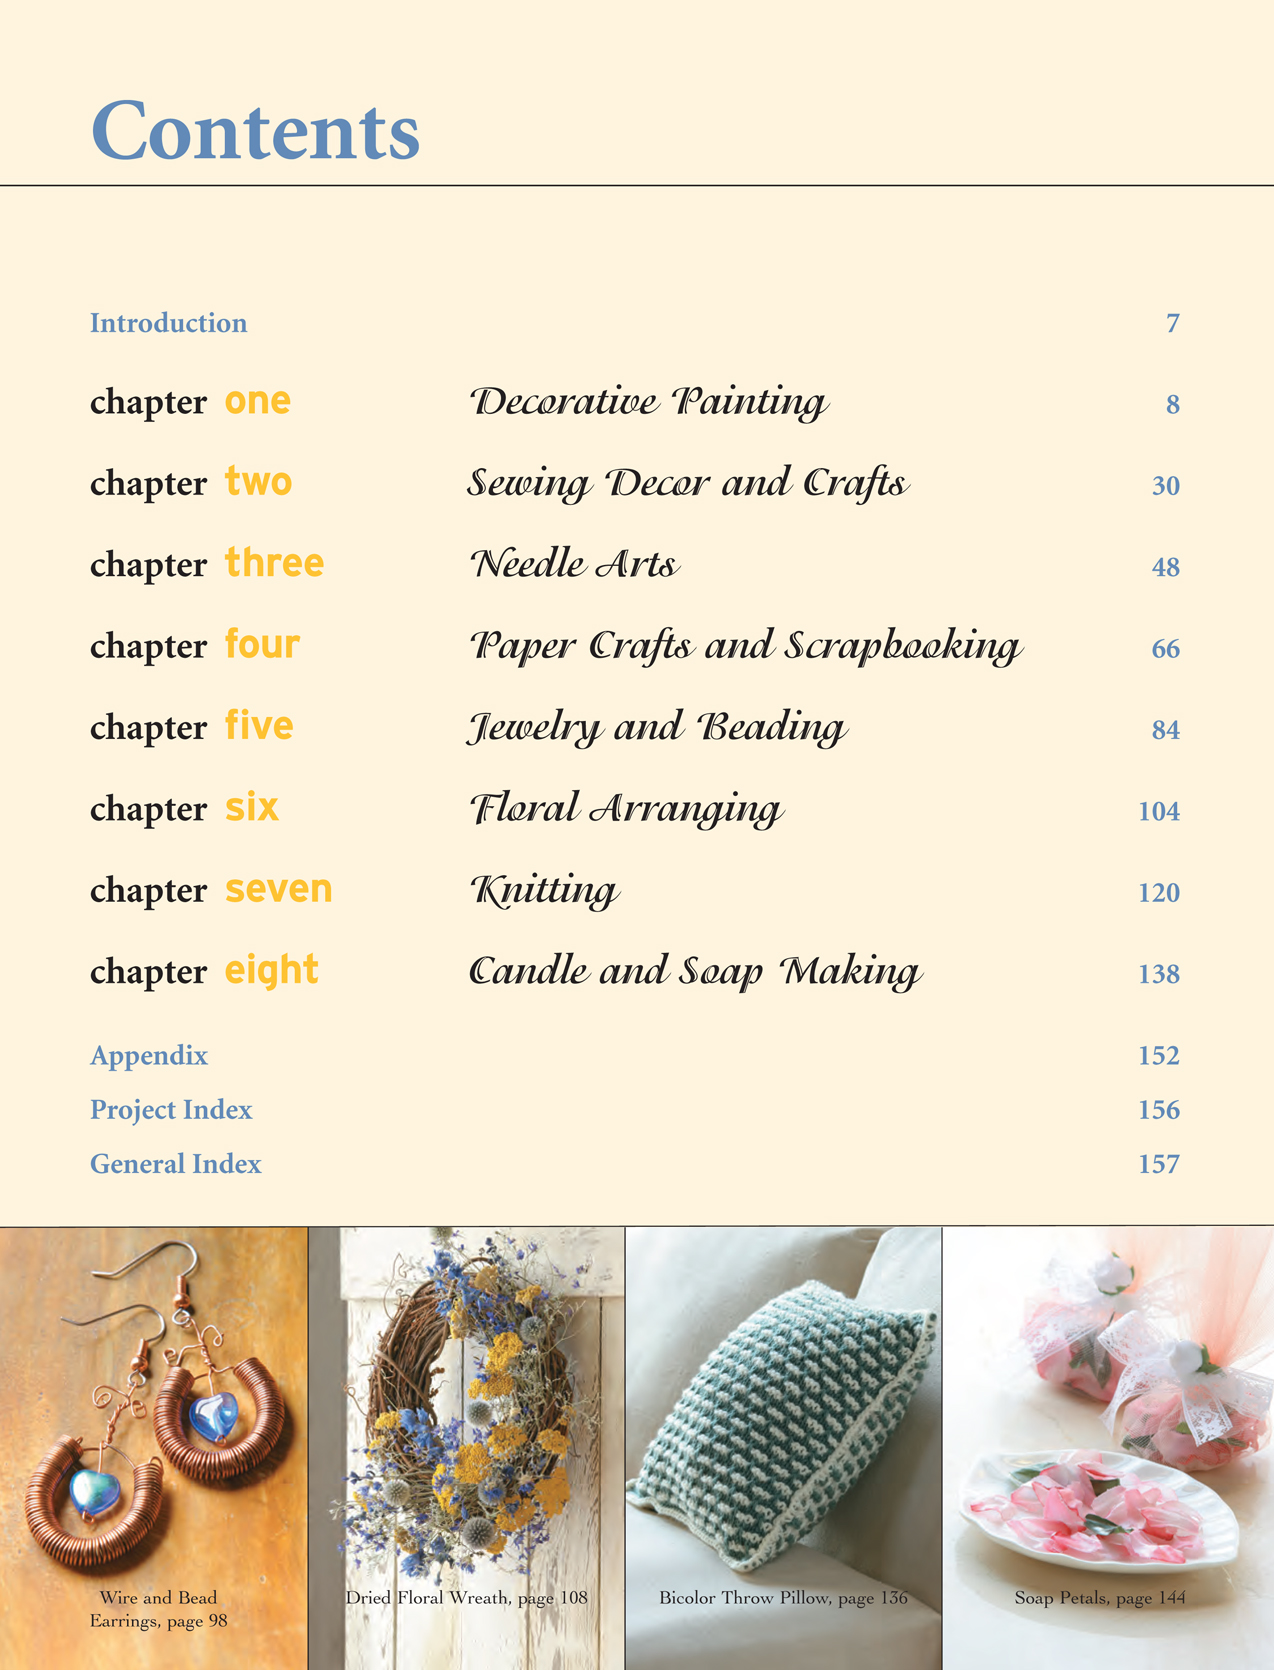 R4005B Craft Traditions TABLE OF CONTENTS